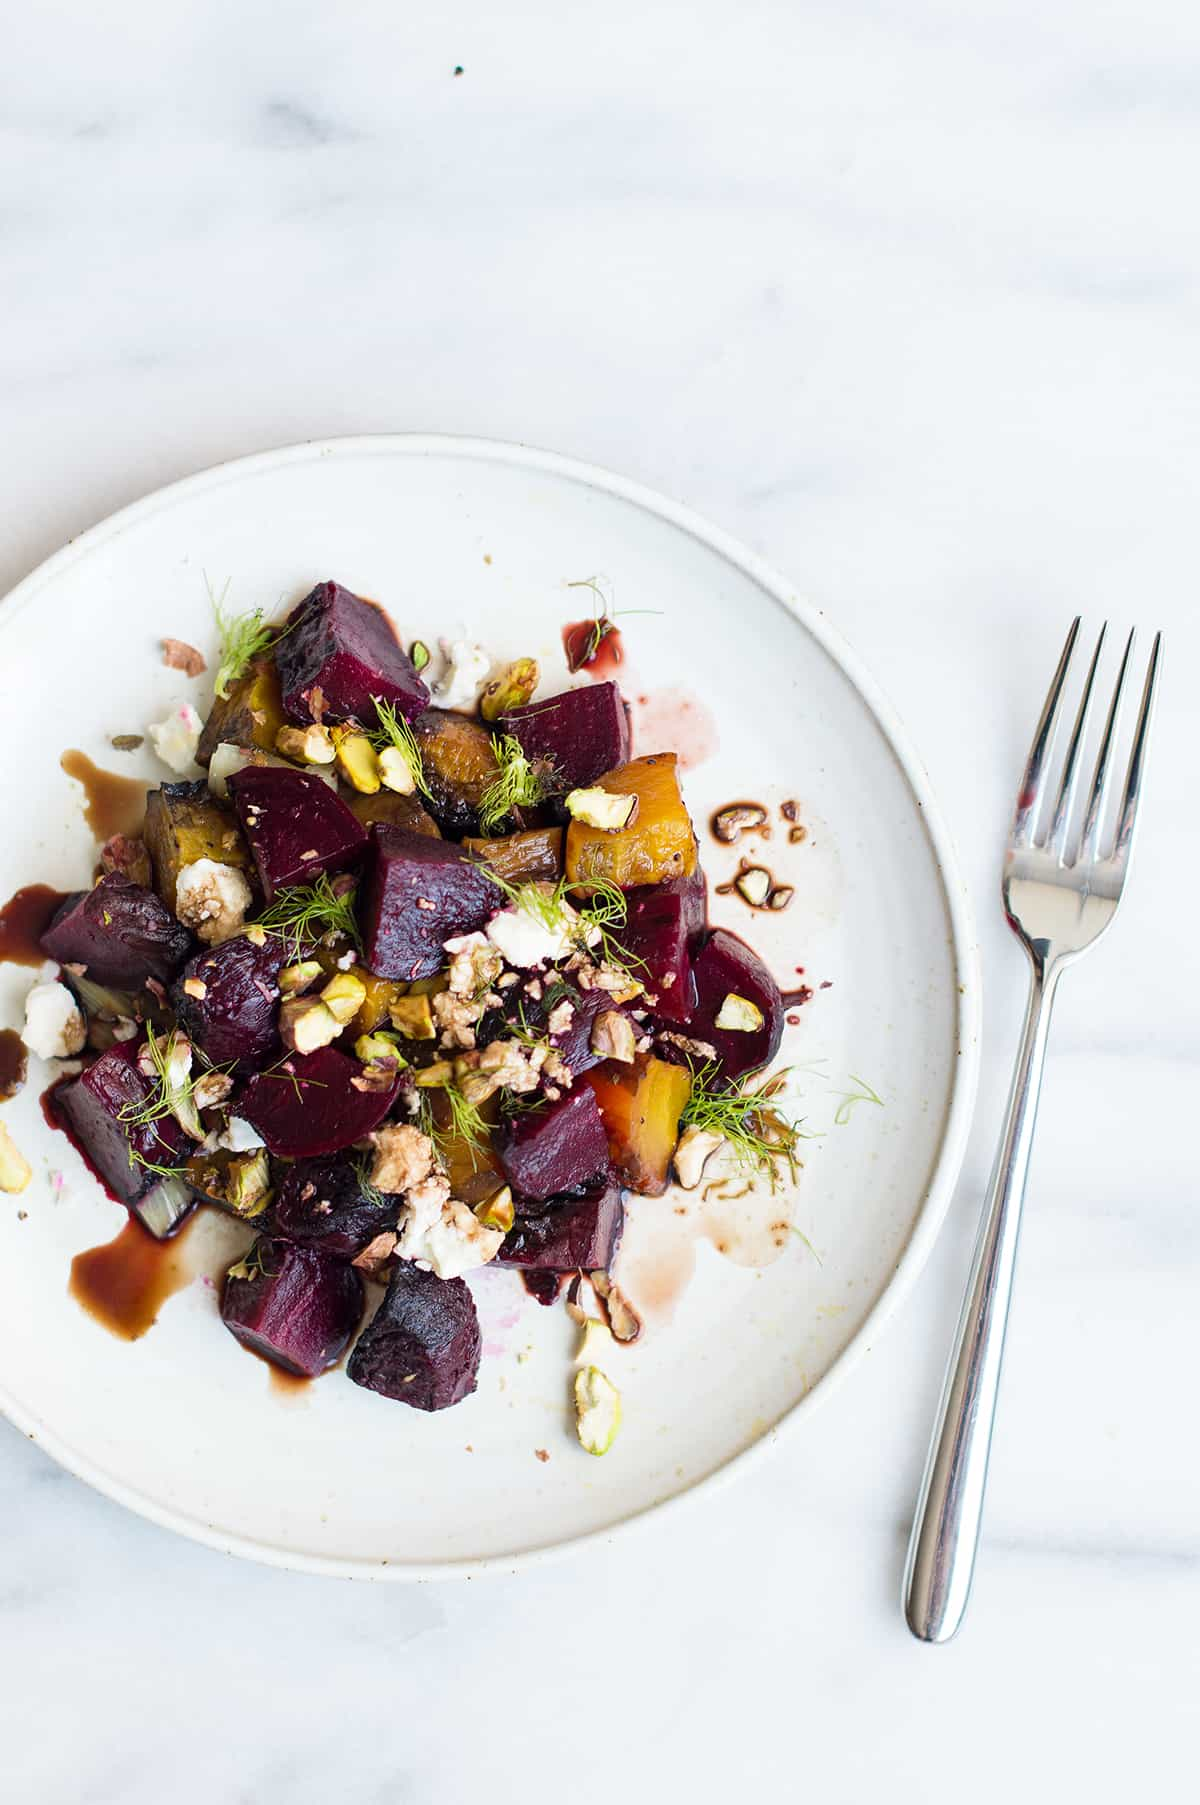 roasted fennel and beet salad on plate with fork